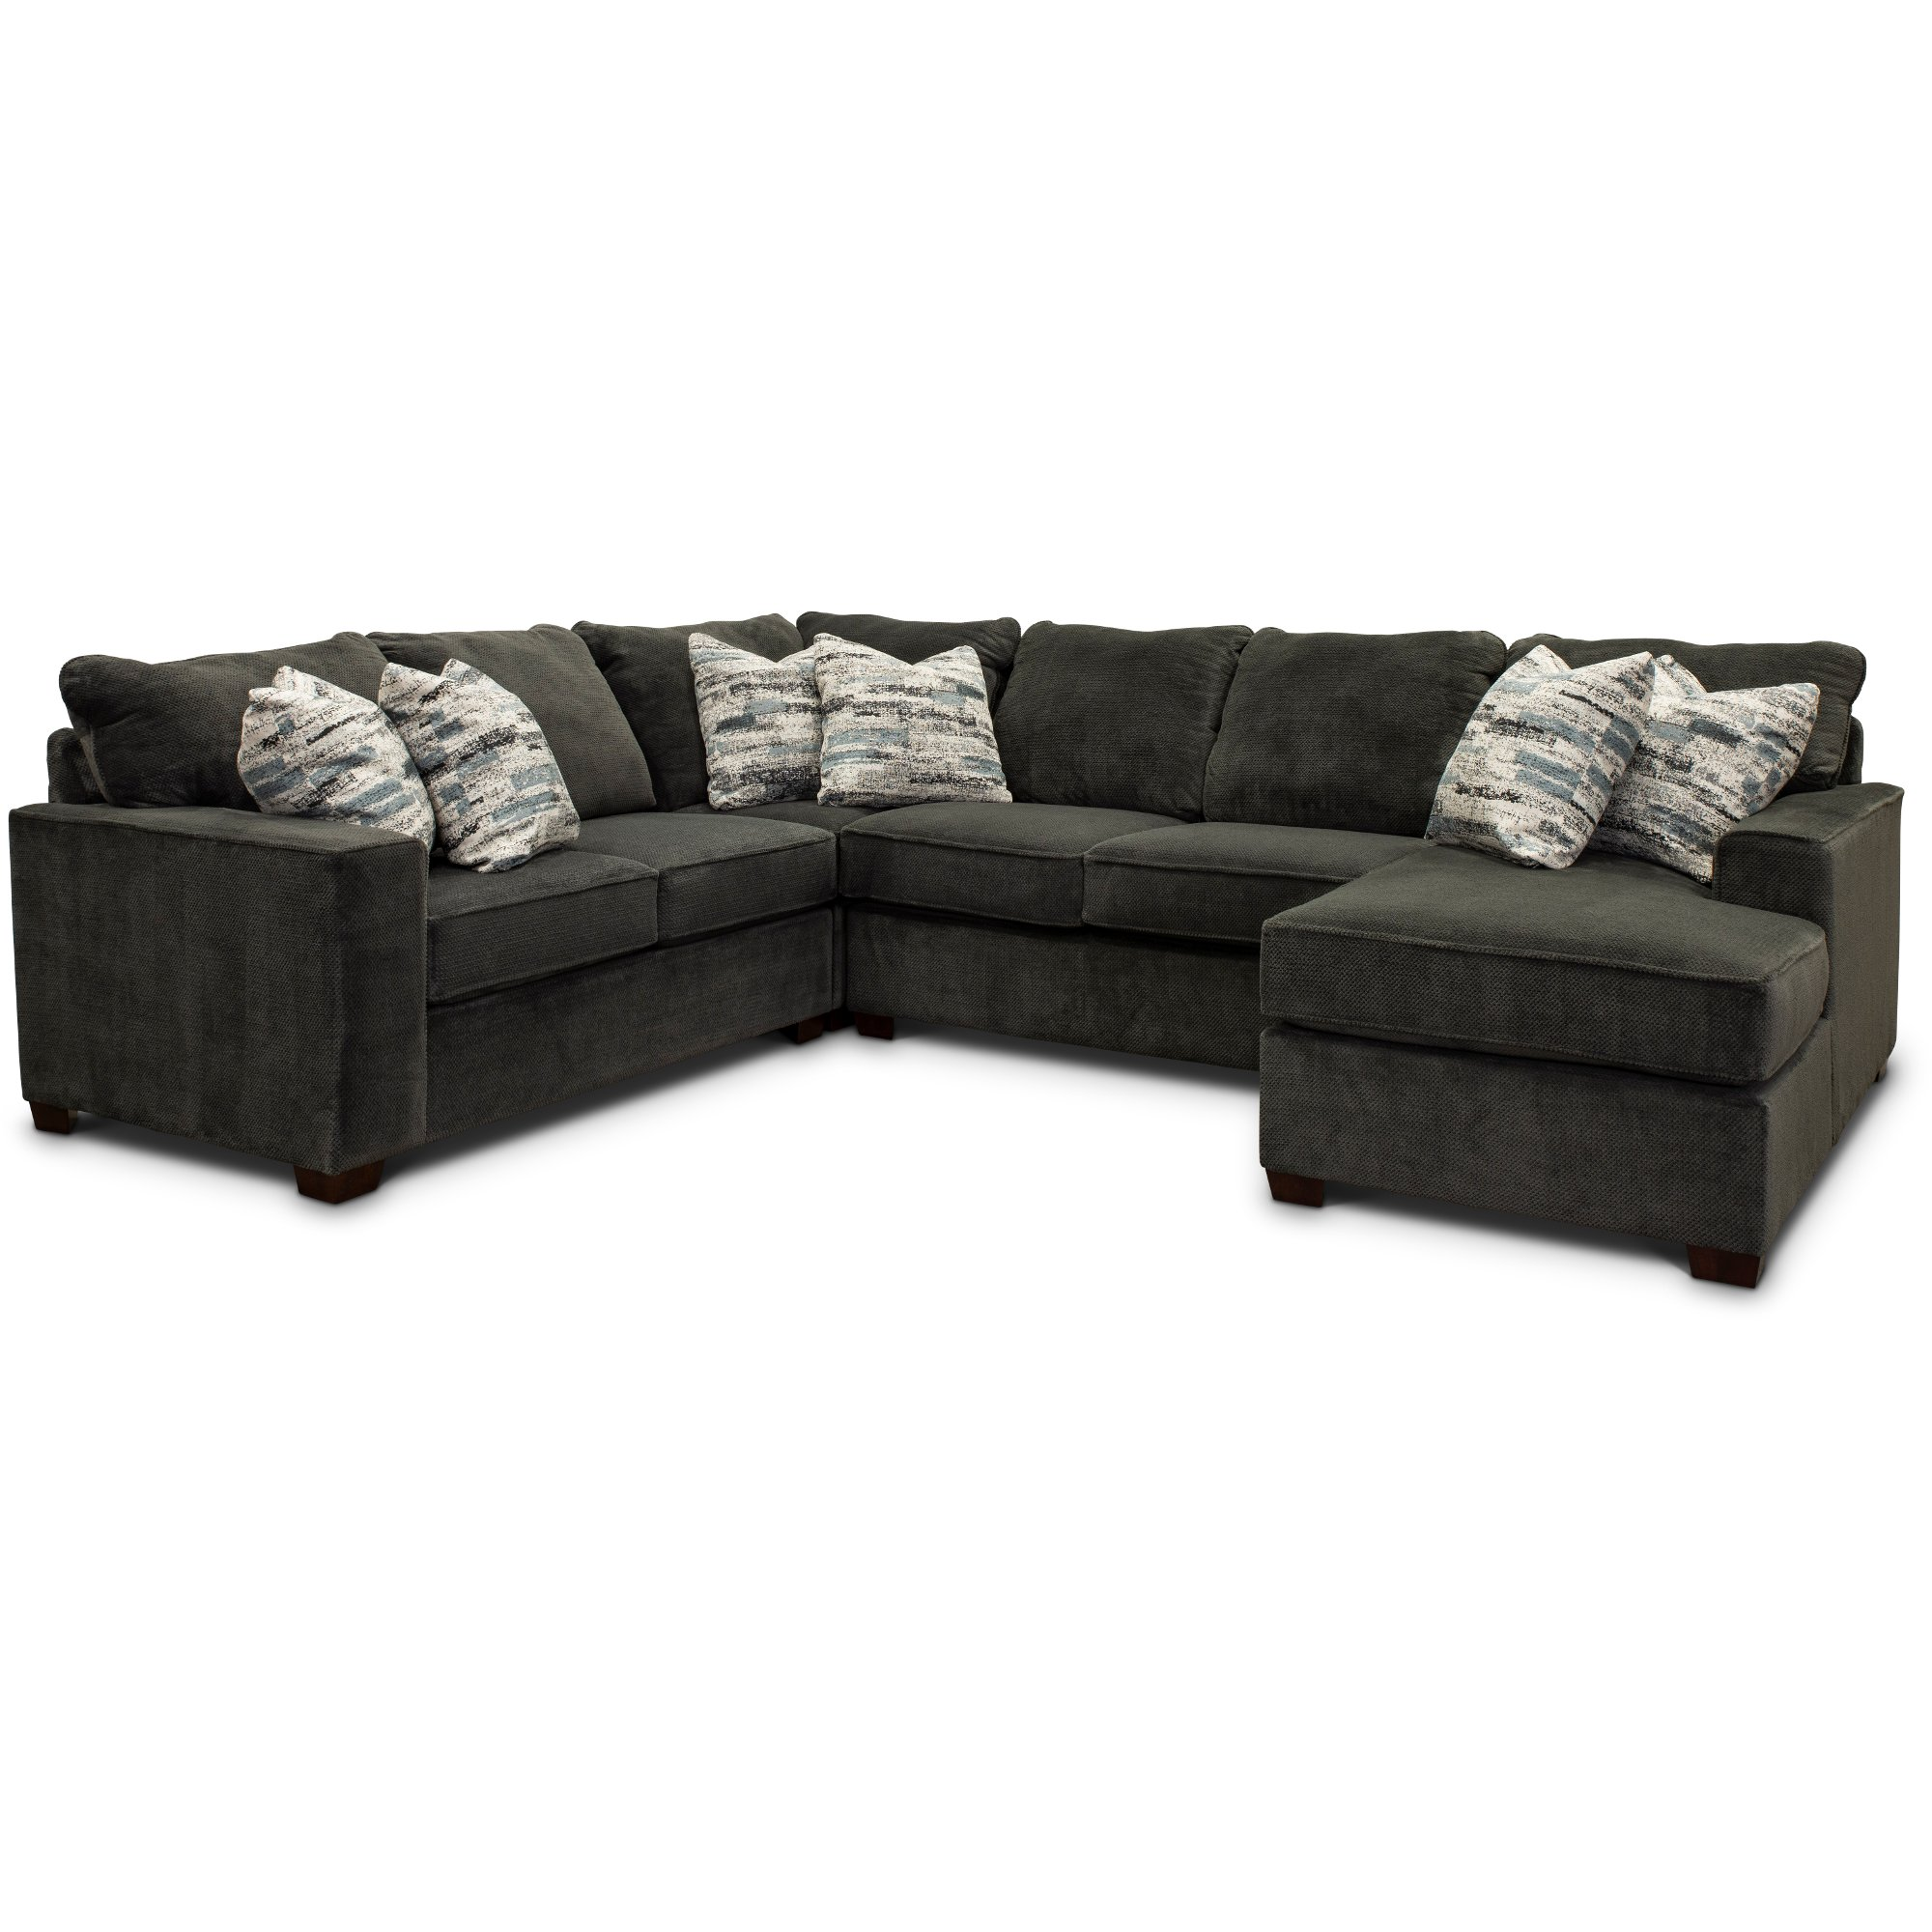 Dark Gray 4 Piece Sectional Sofa with LAF Loveseat - Autumn | RC Willey  Furniture Store